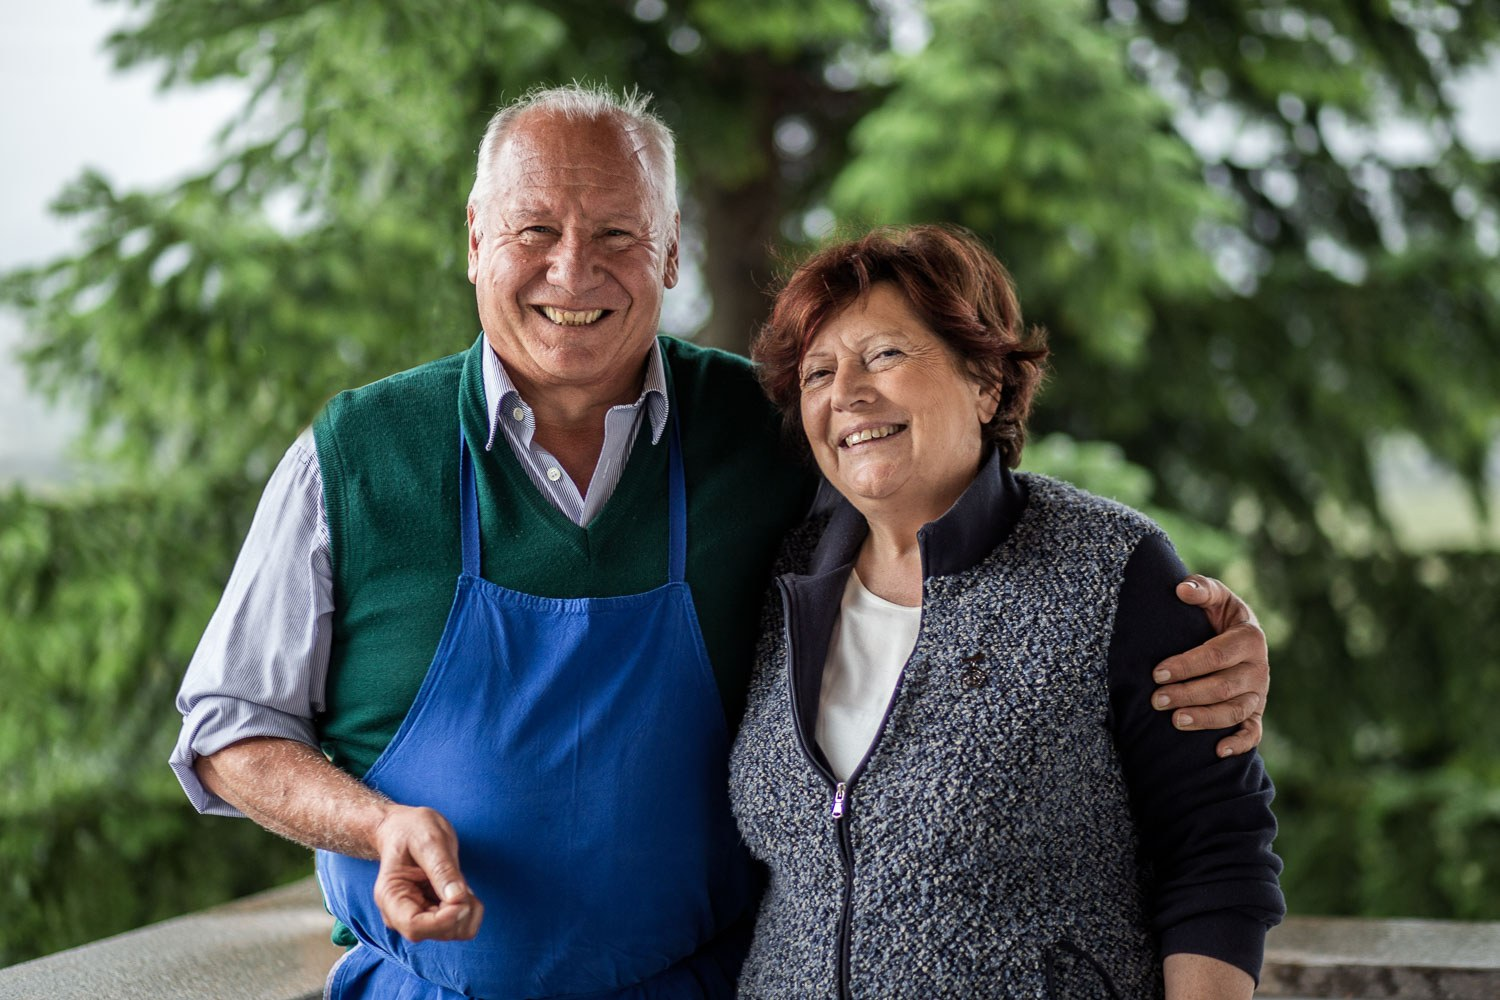 Organic farmer Helmuth Alessandrini with his wife